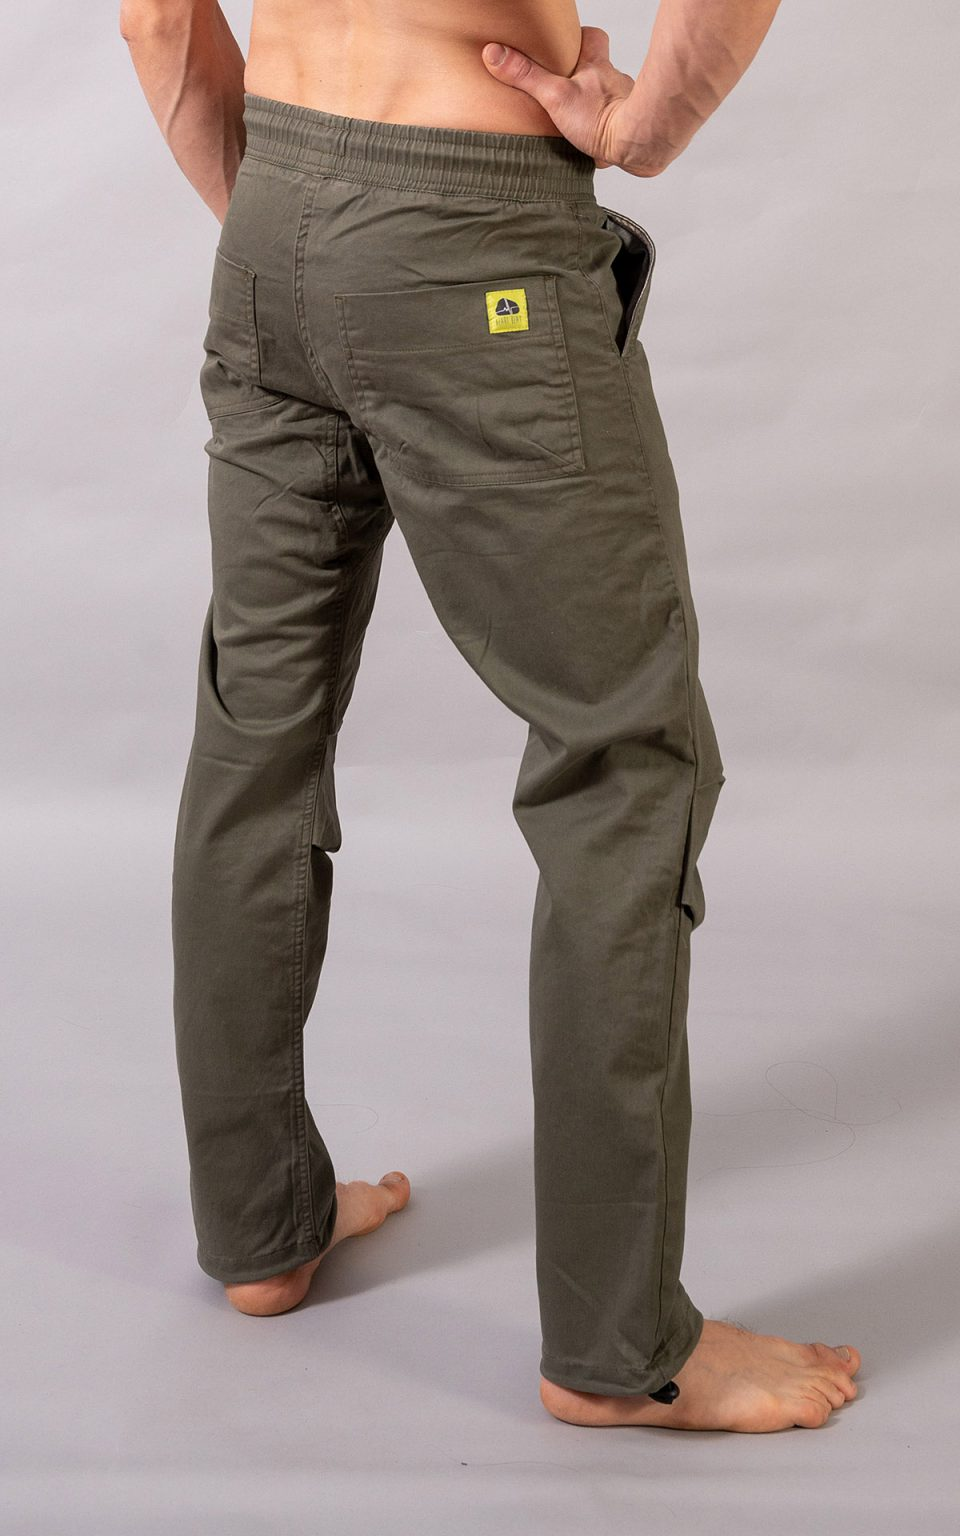 Cotton Classic pants - olive green